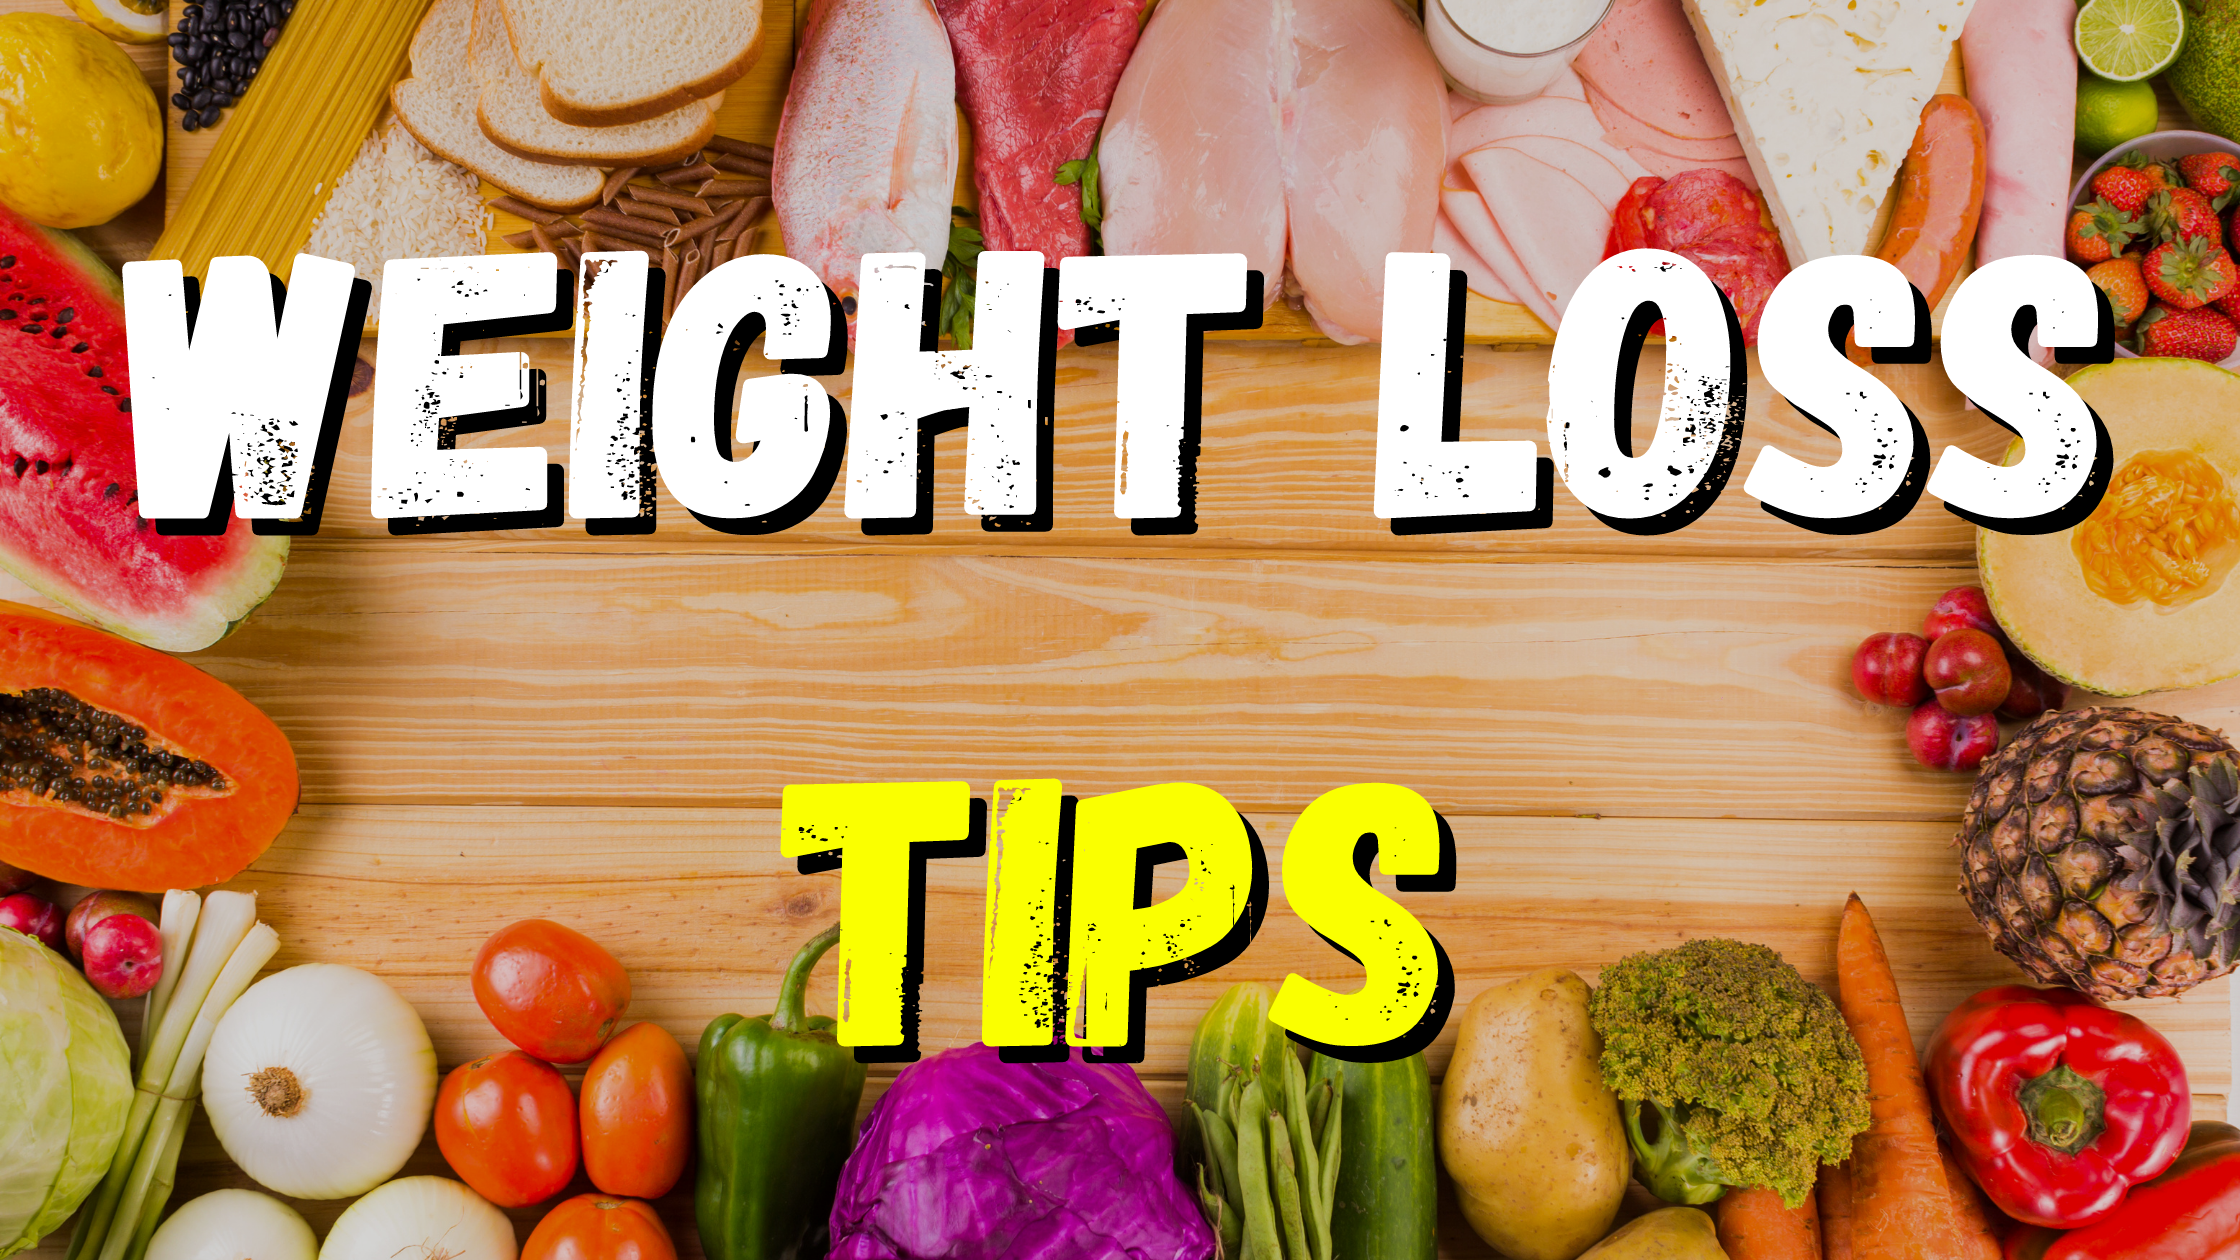 Weight-loss tips